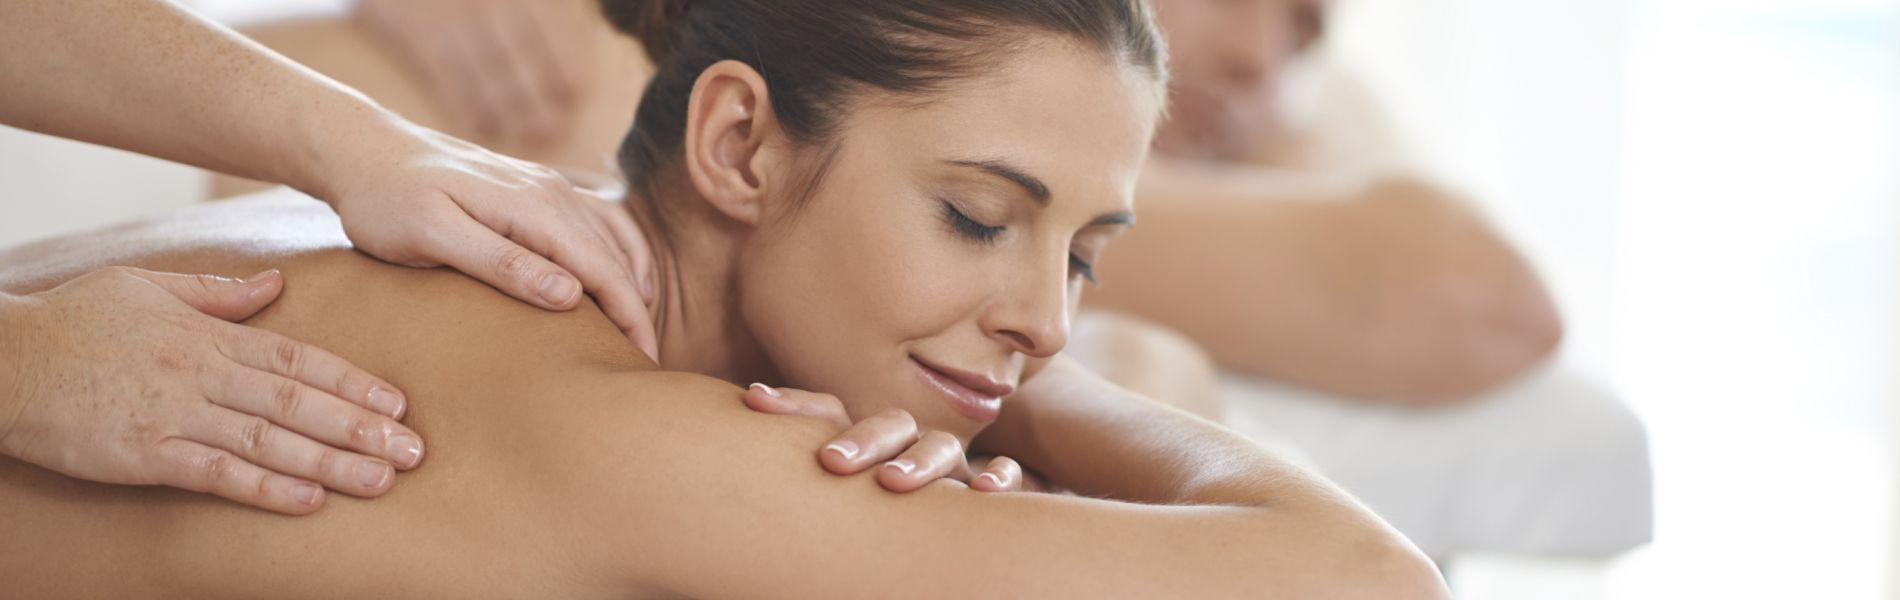 Martha's Vineyard Amenities - Enjoy a Massage in Your Private Martha's Vineyard Cottage